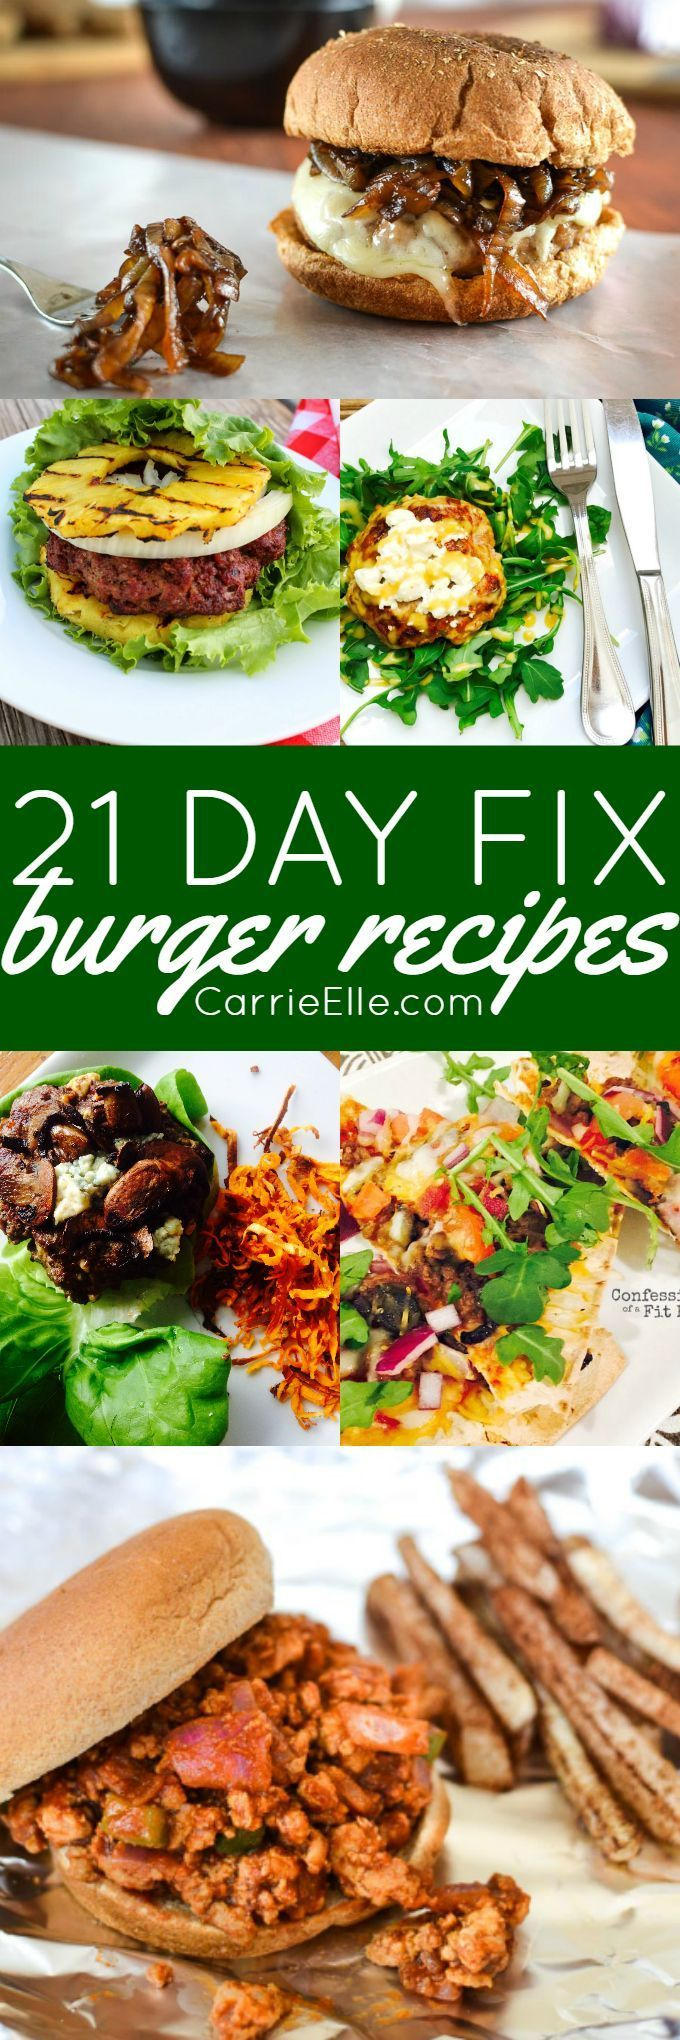 21 Day Fix Burger Recipes via @carrieelleblog